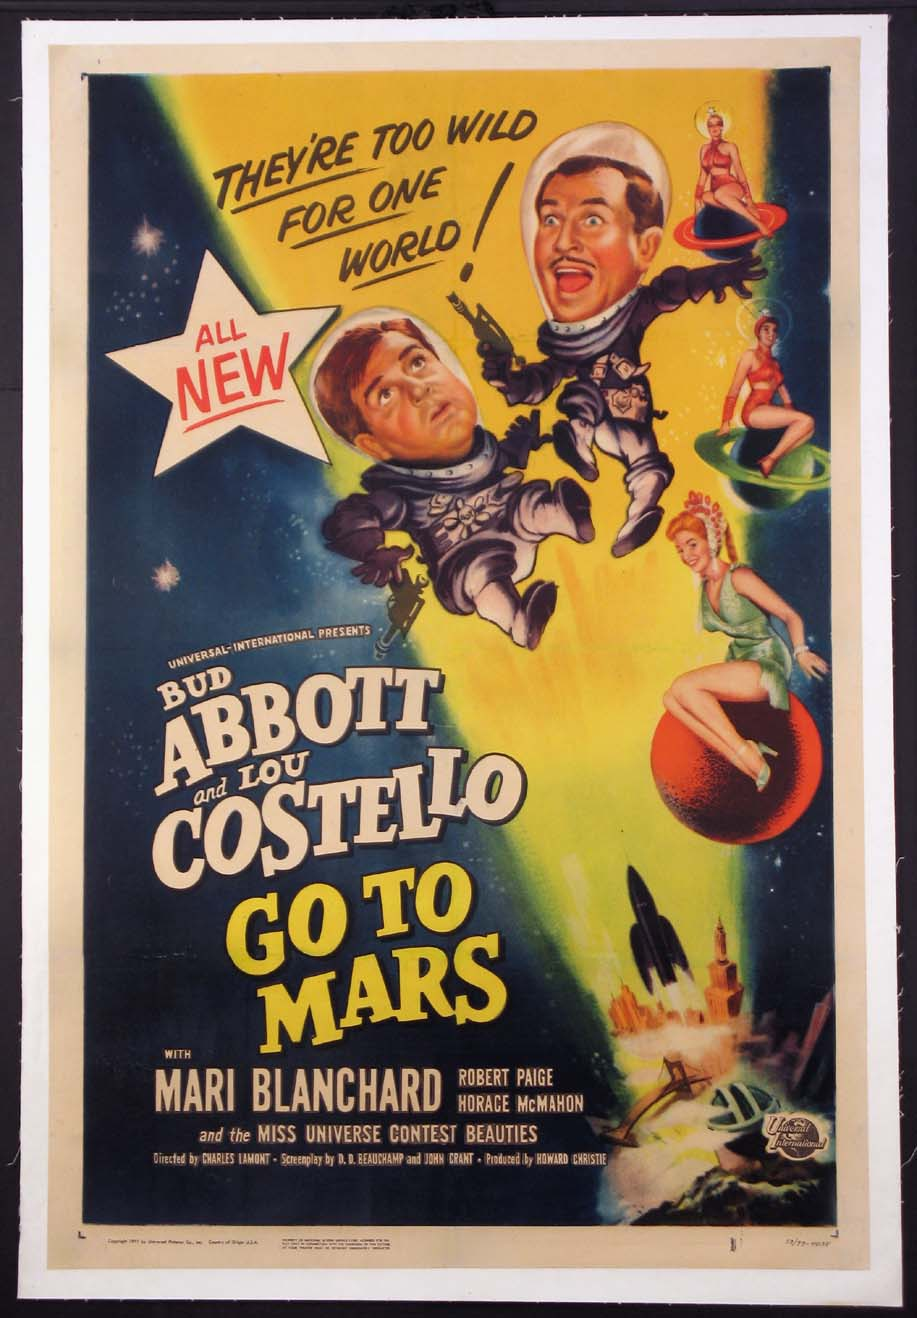 ABBOTT AND COSTELLO GO TO MARS @ FilmPosters.com